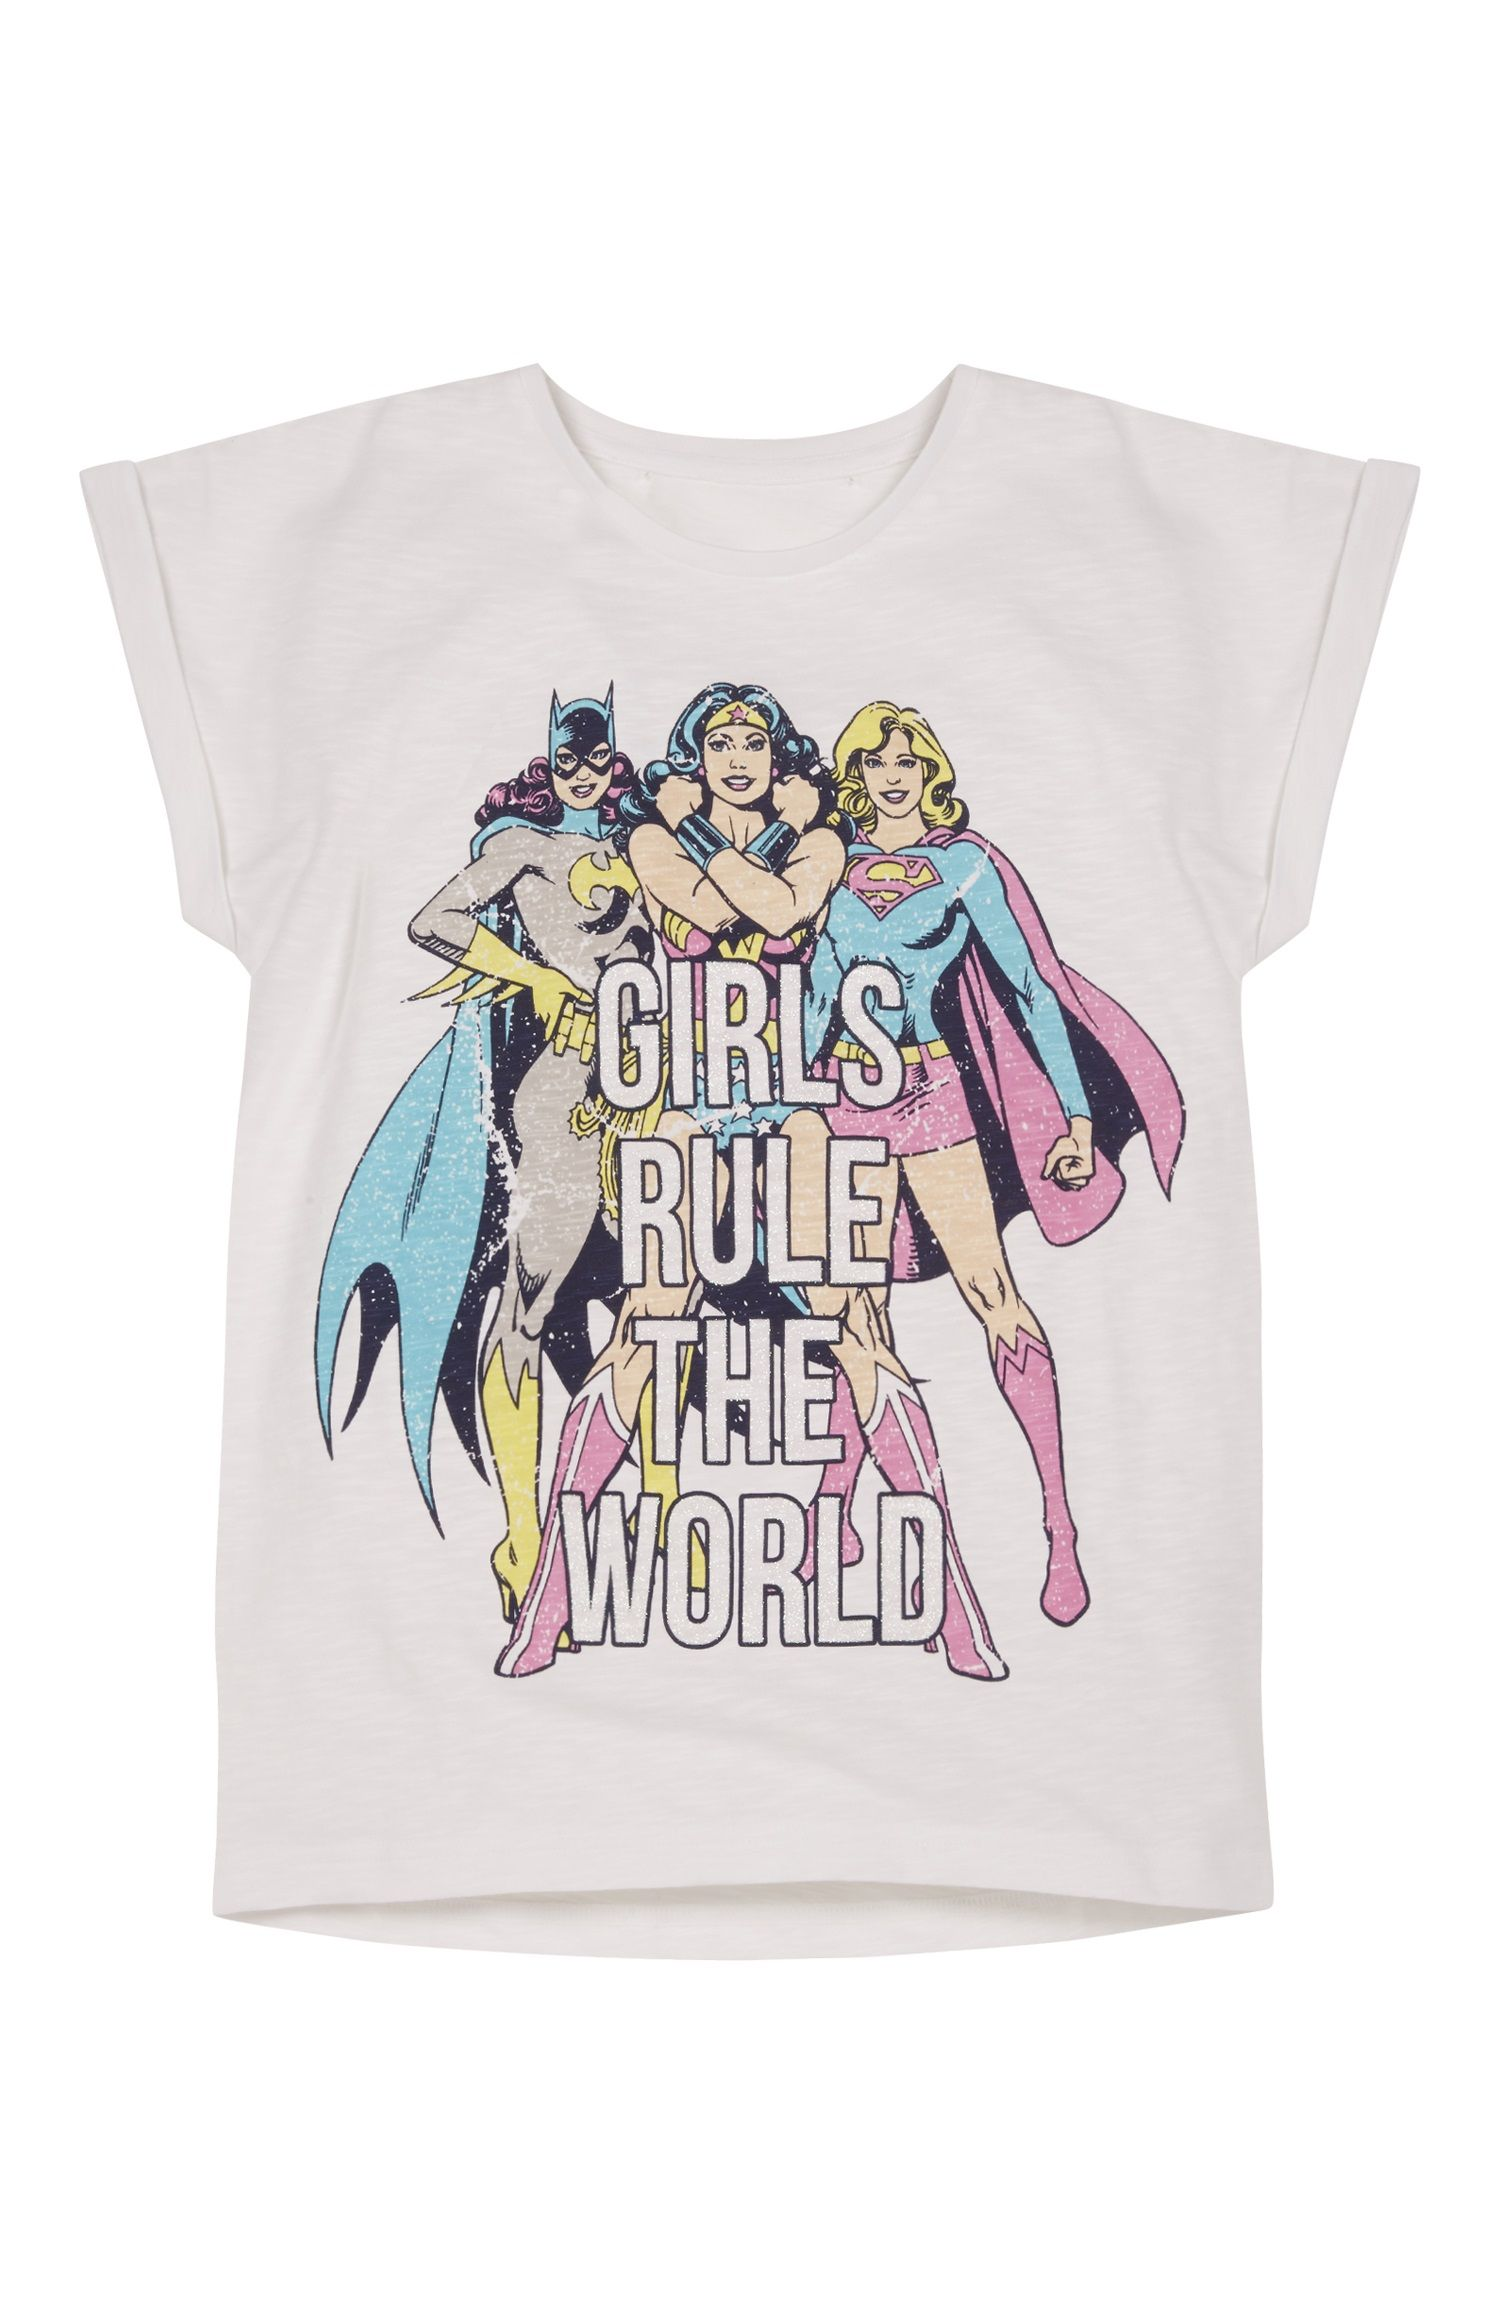 ec55d304477 Primark - Girls Rule The World Superhero T-Shirt Batgirl Supergirl Wonder  Woman